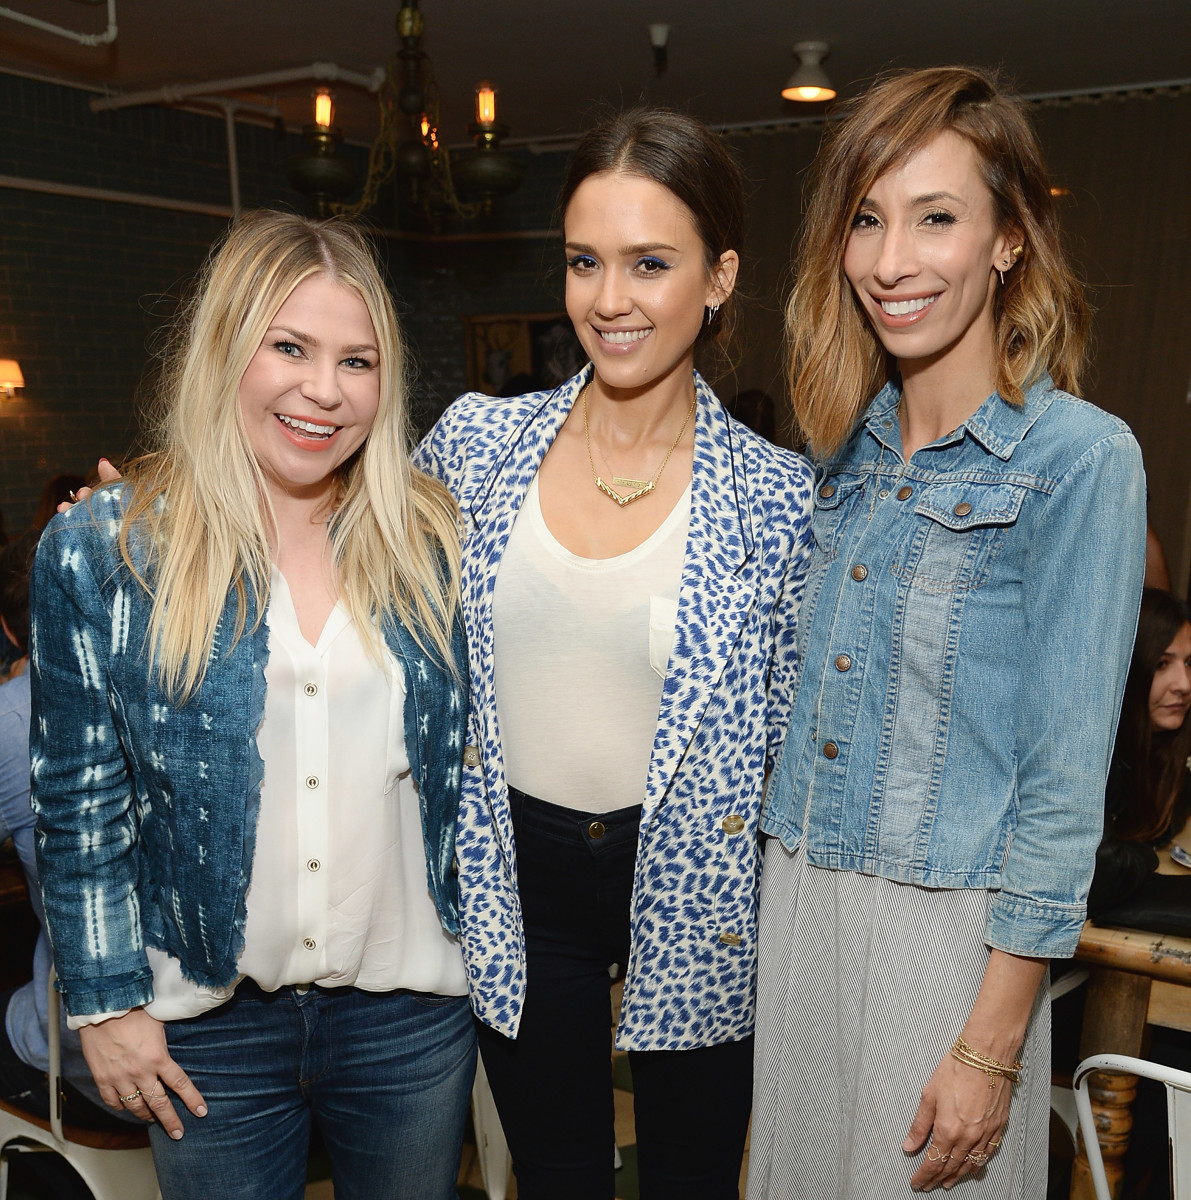 Emily Current (left) and Meritt Elliott (right) with Jessica Alba. Photo: Michael Kovac/Getty Images